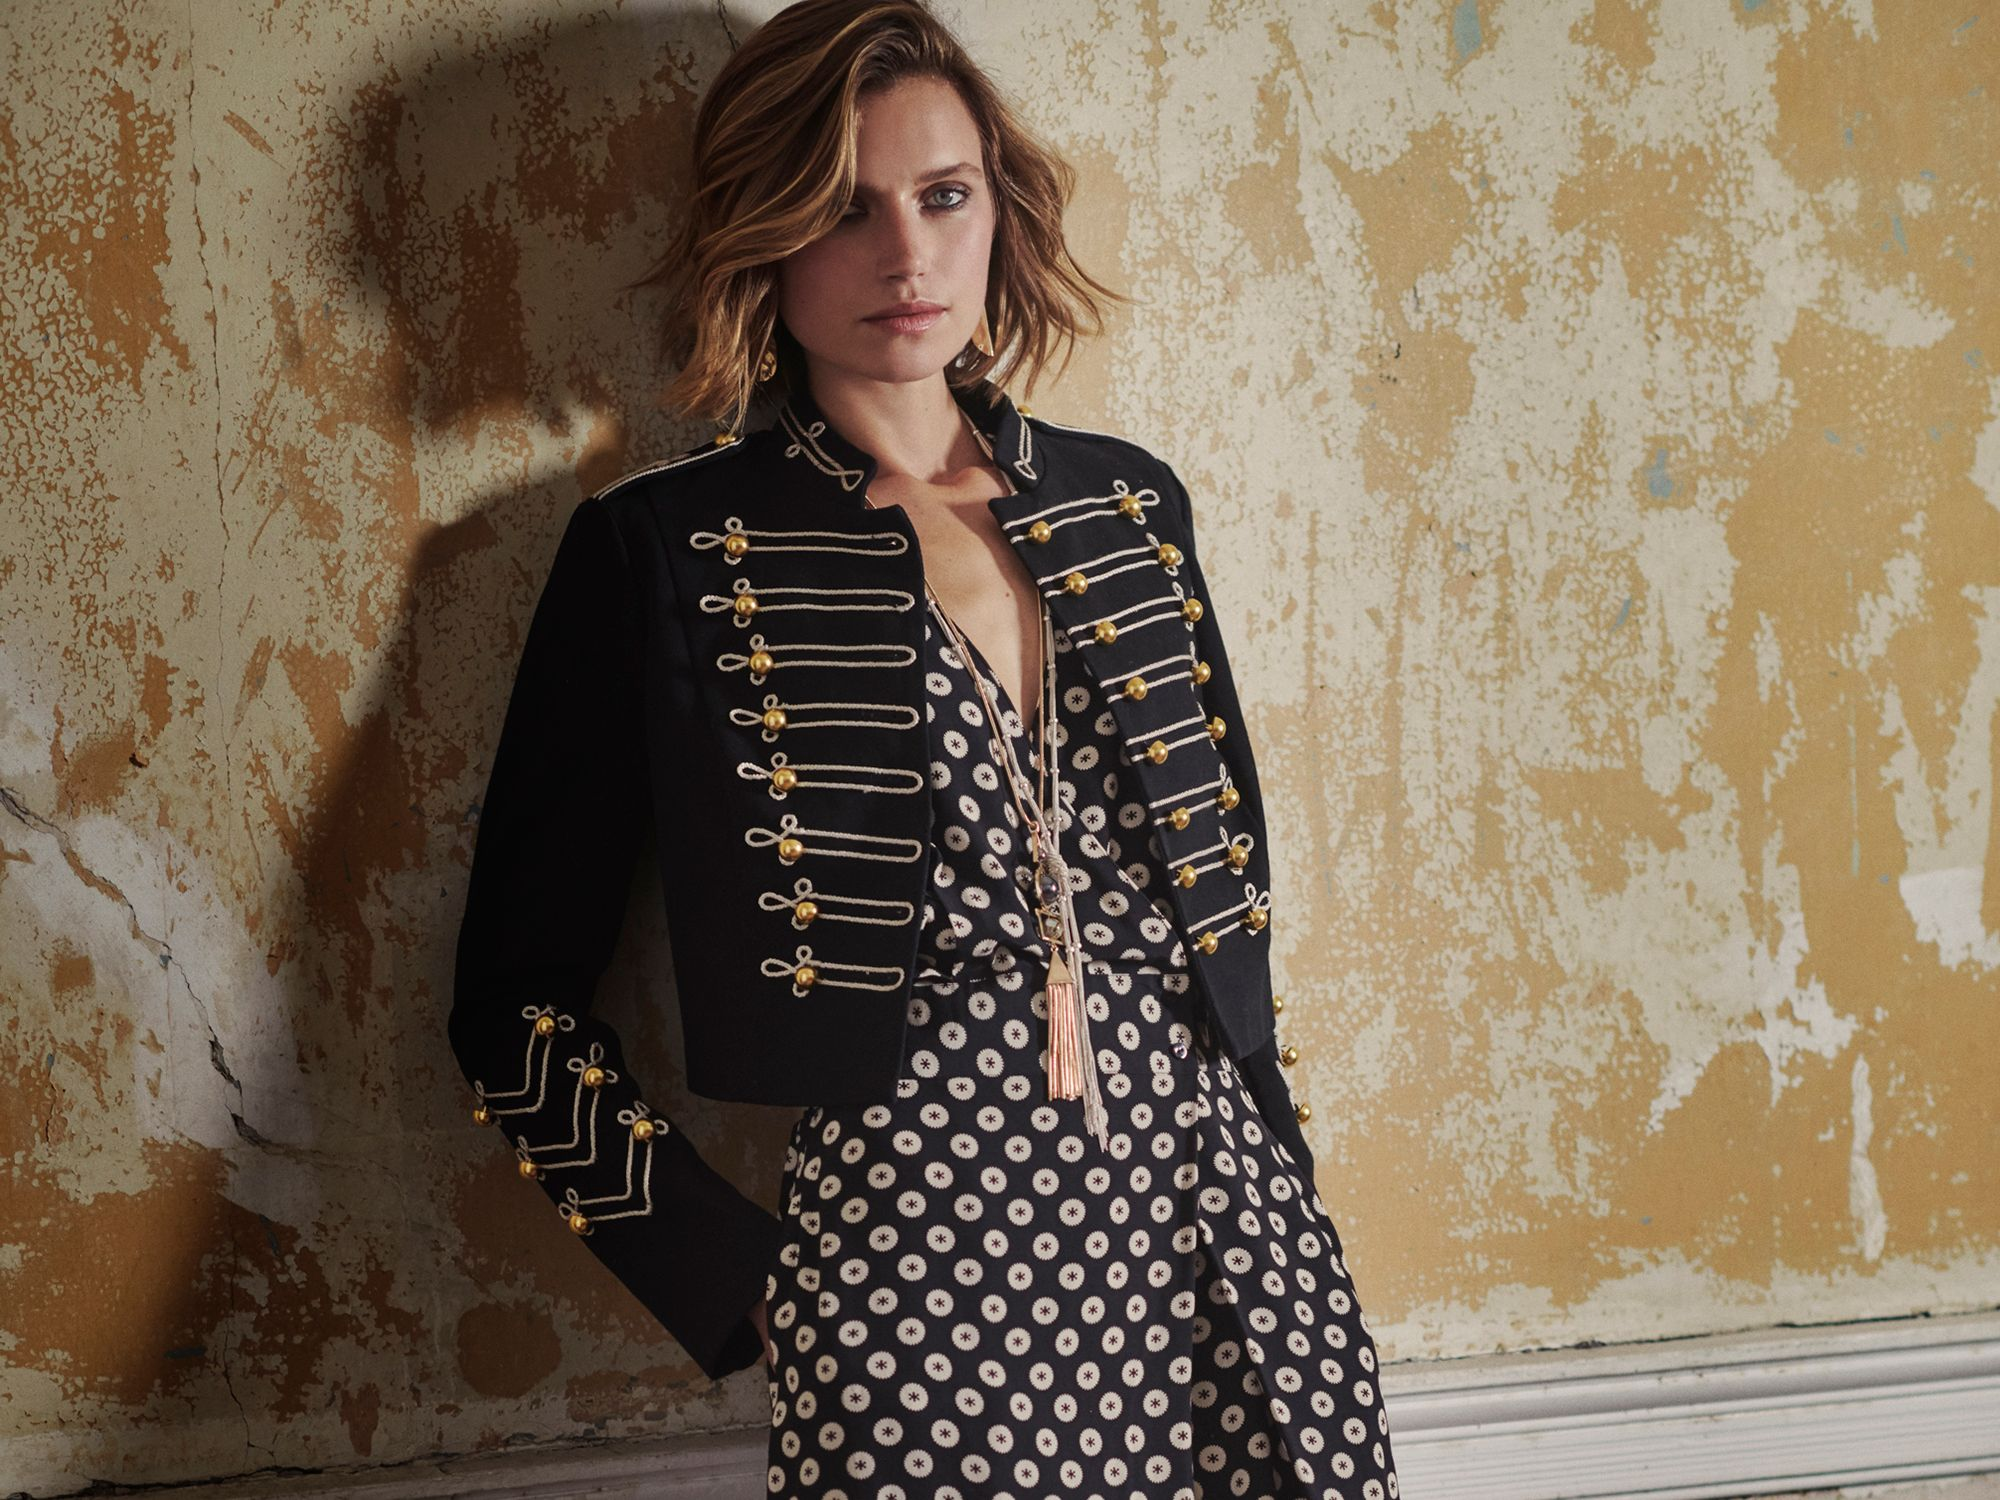 A fashion model wearing a military jacket and jumpsuit from Somerset by Alice Temperley for John Lewis